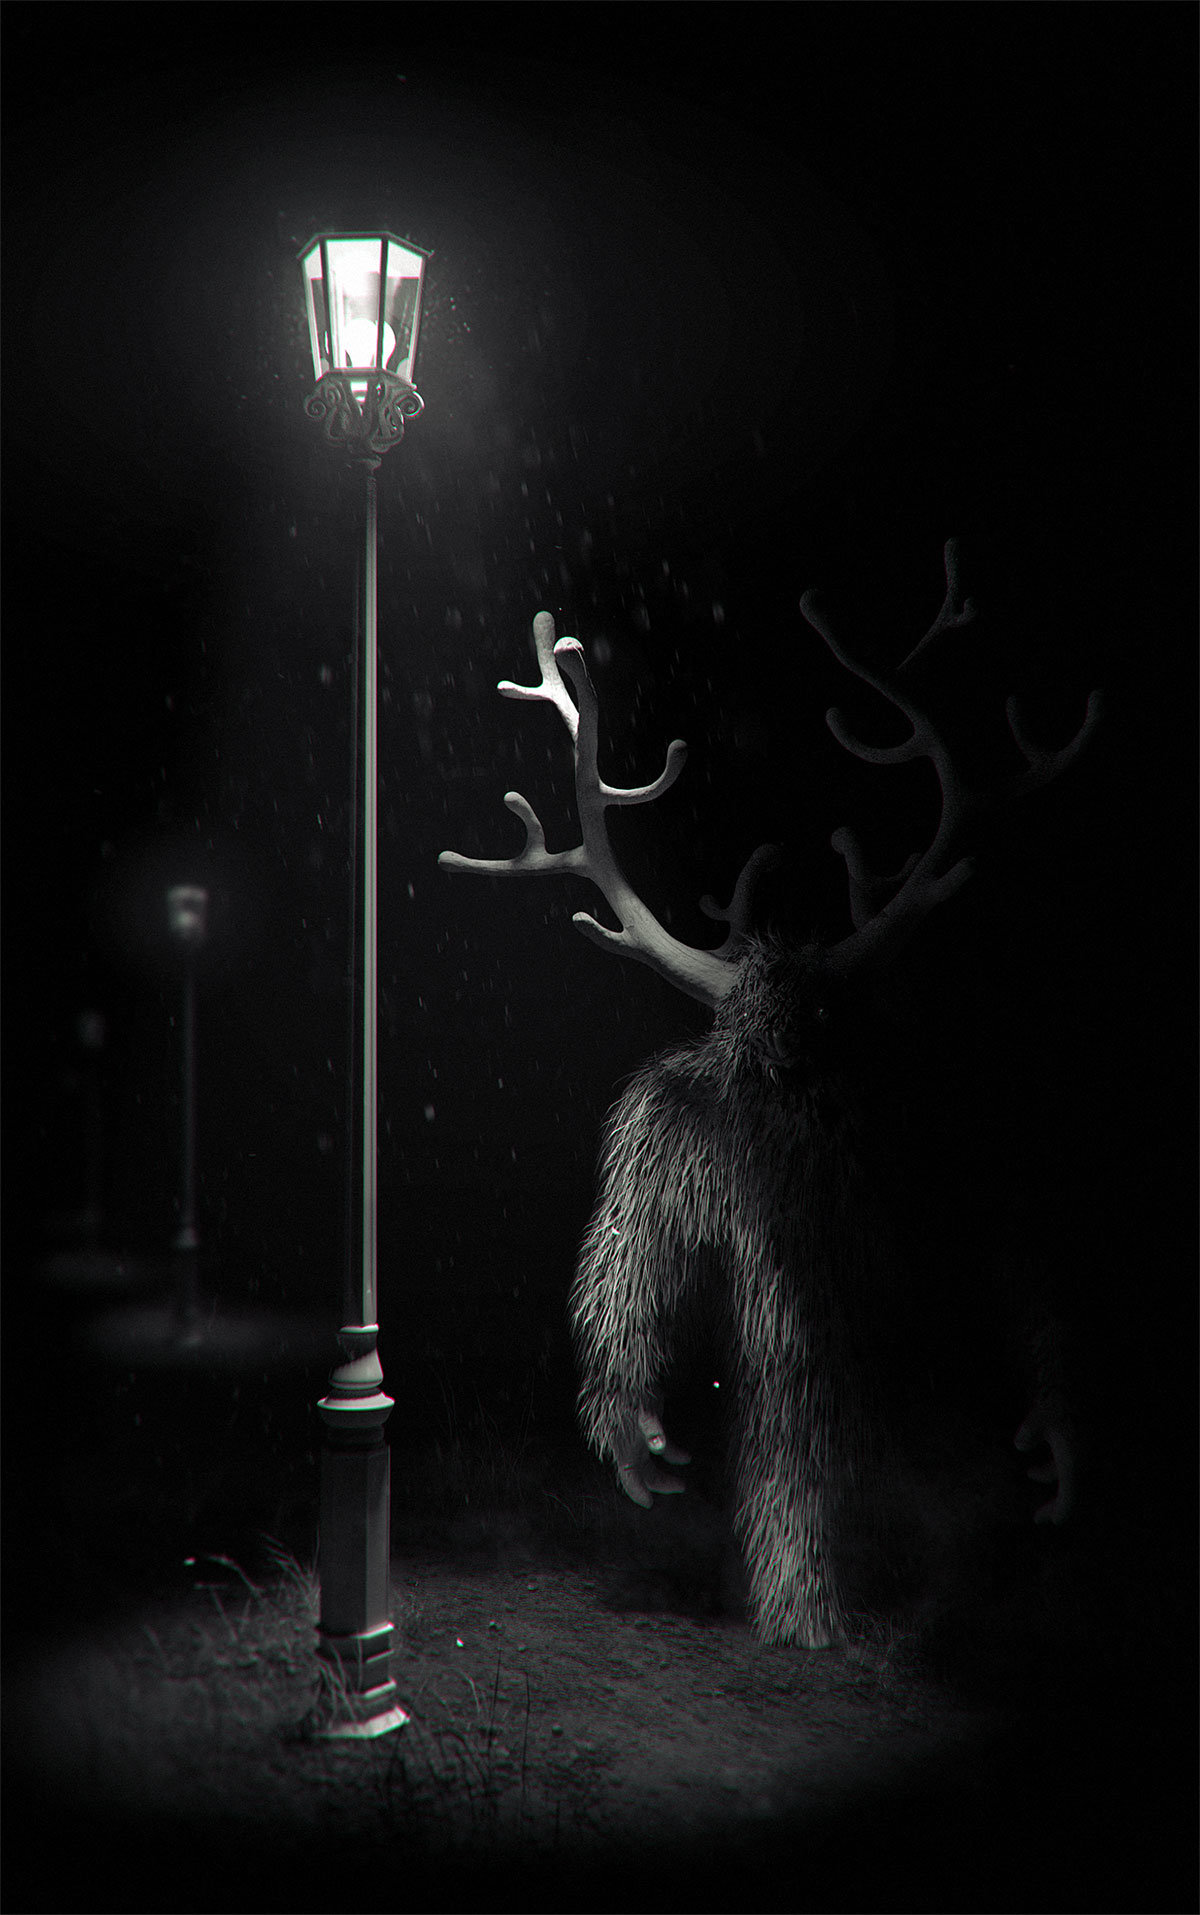 Pablo munoz gomez lost creatures nocturnal horned hox